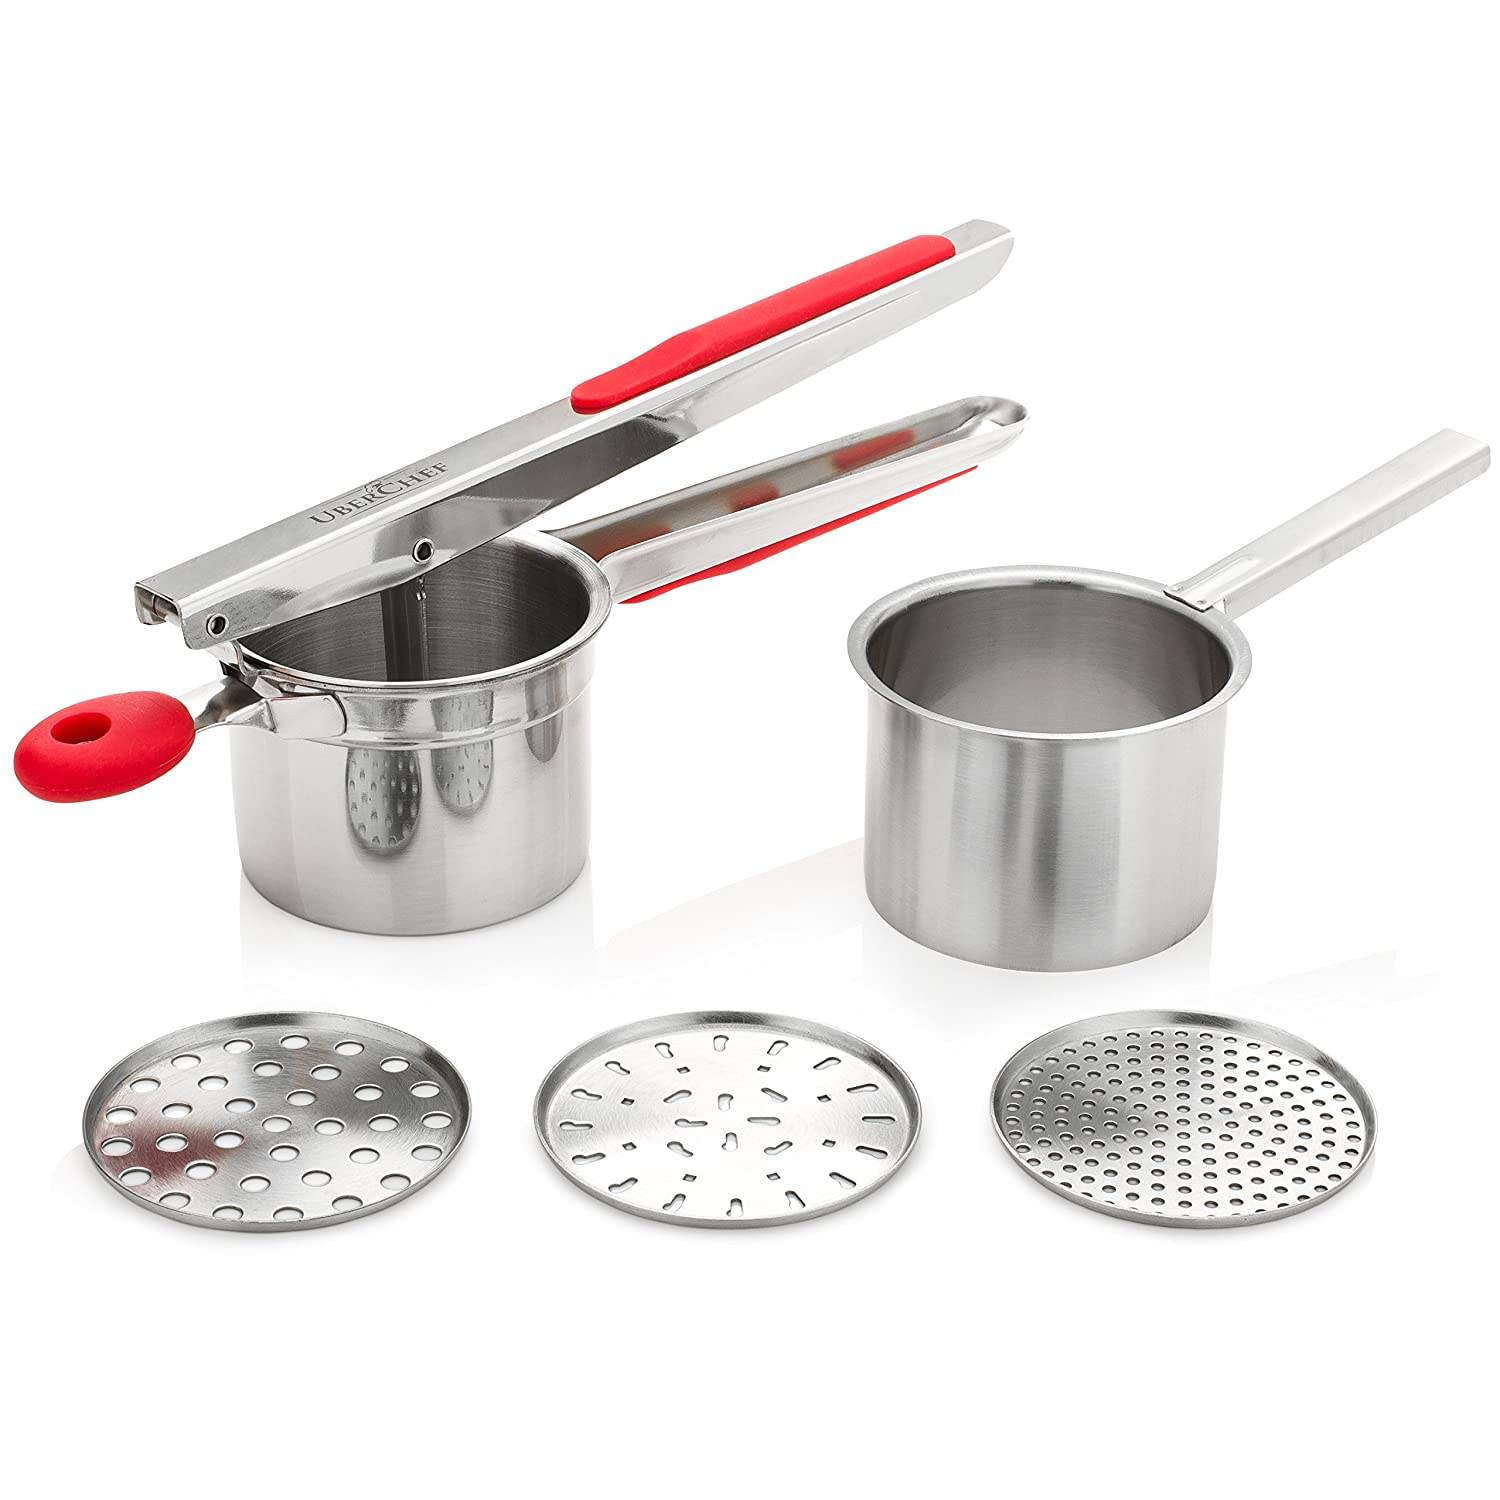 UberChef Potato Ricer Set with 3 Ricing Discs (Fine, Medium, Coarse) - Premium Stainless Steel Baby Food Strainer, Fruit Masher, and Food Press with Ergonomic Comfort Grip